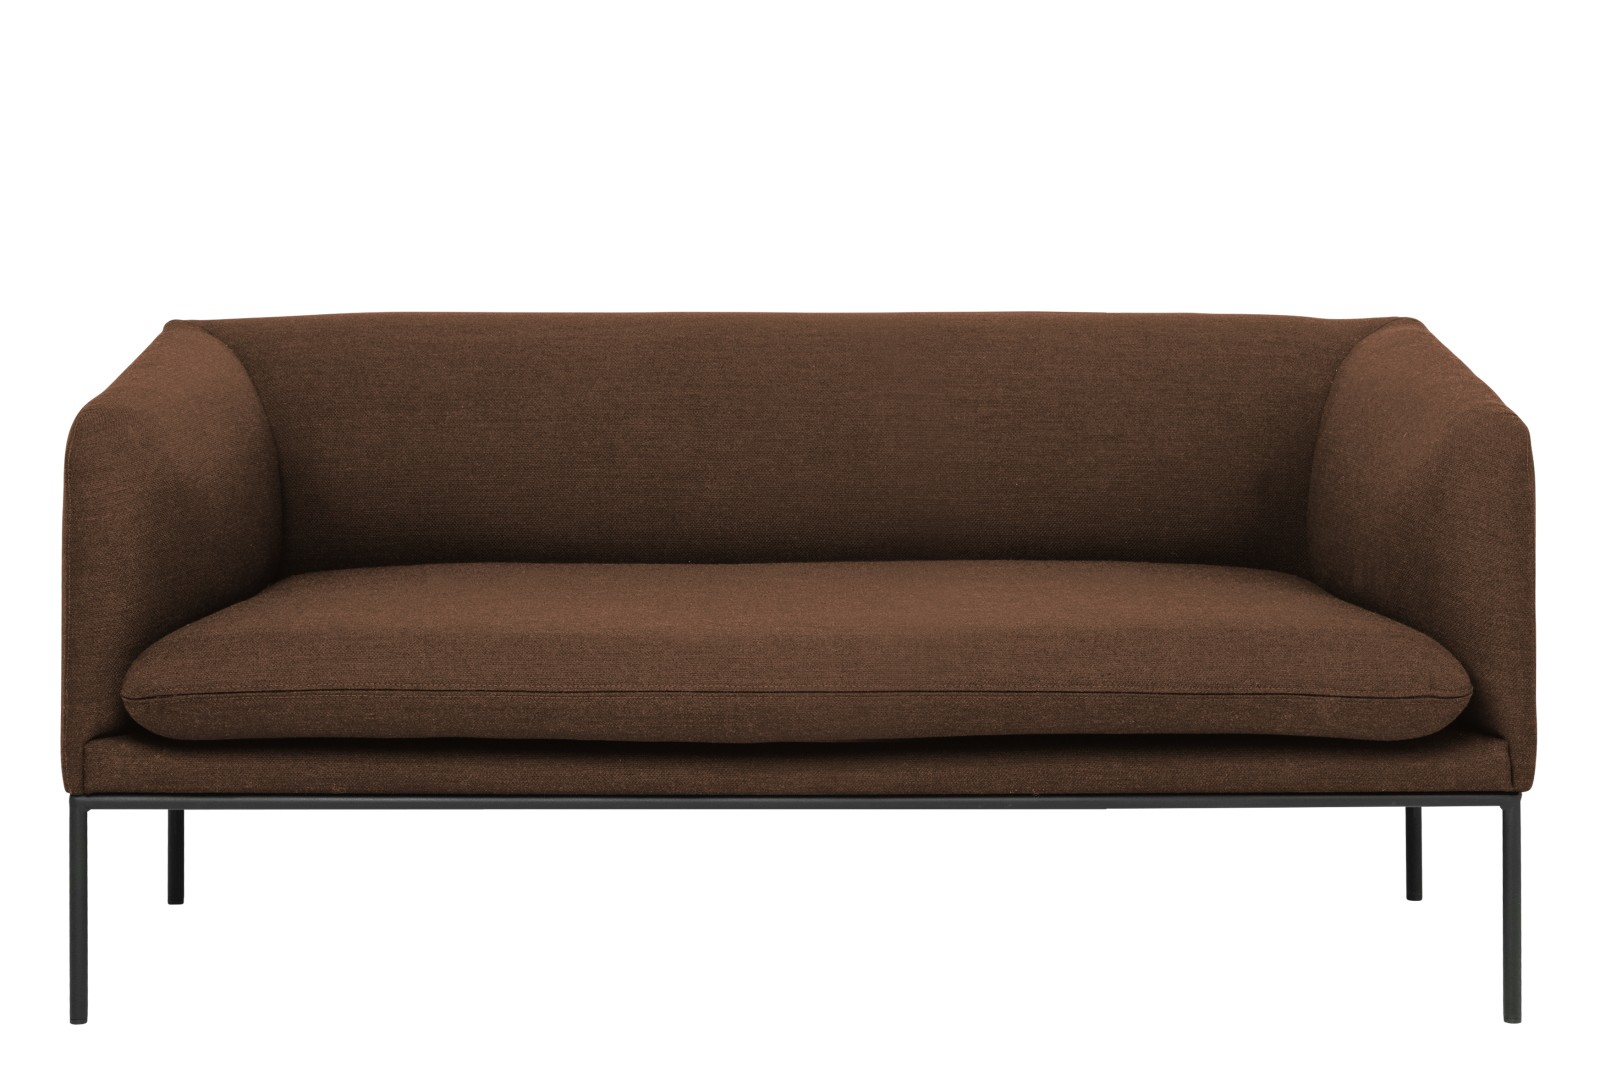 Turn 2 Seater Sofa Fiord by Kvadrat, Solid Rust, Crib 5